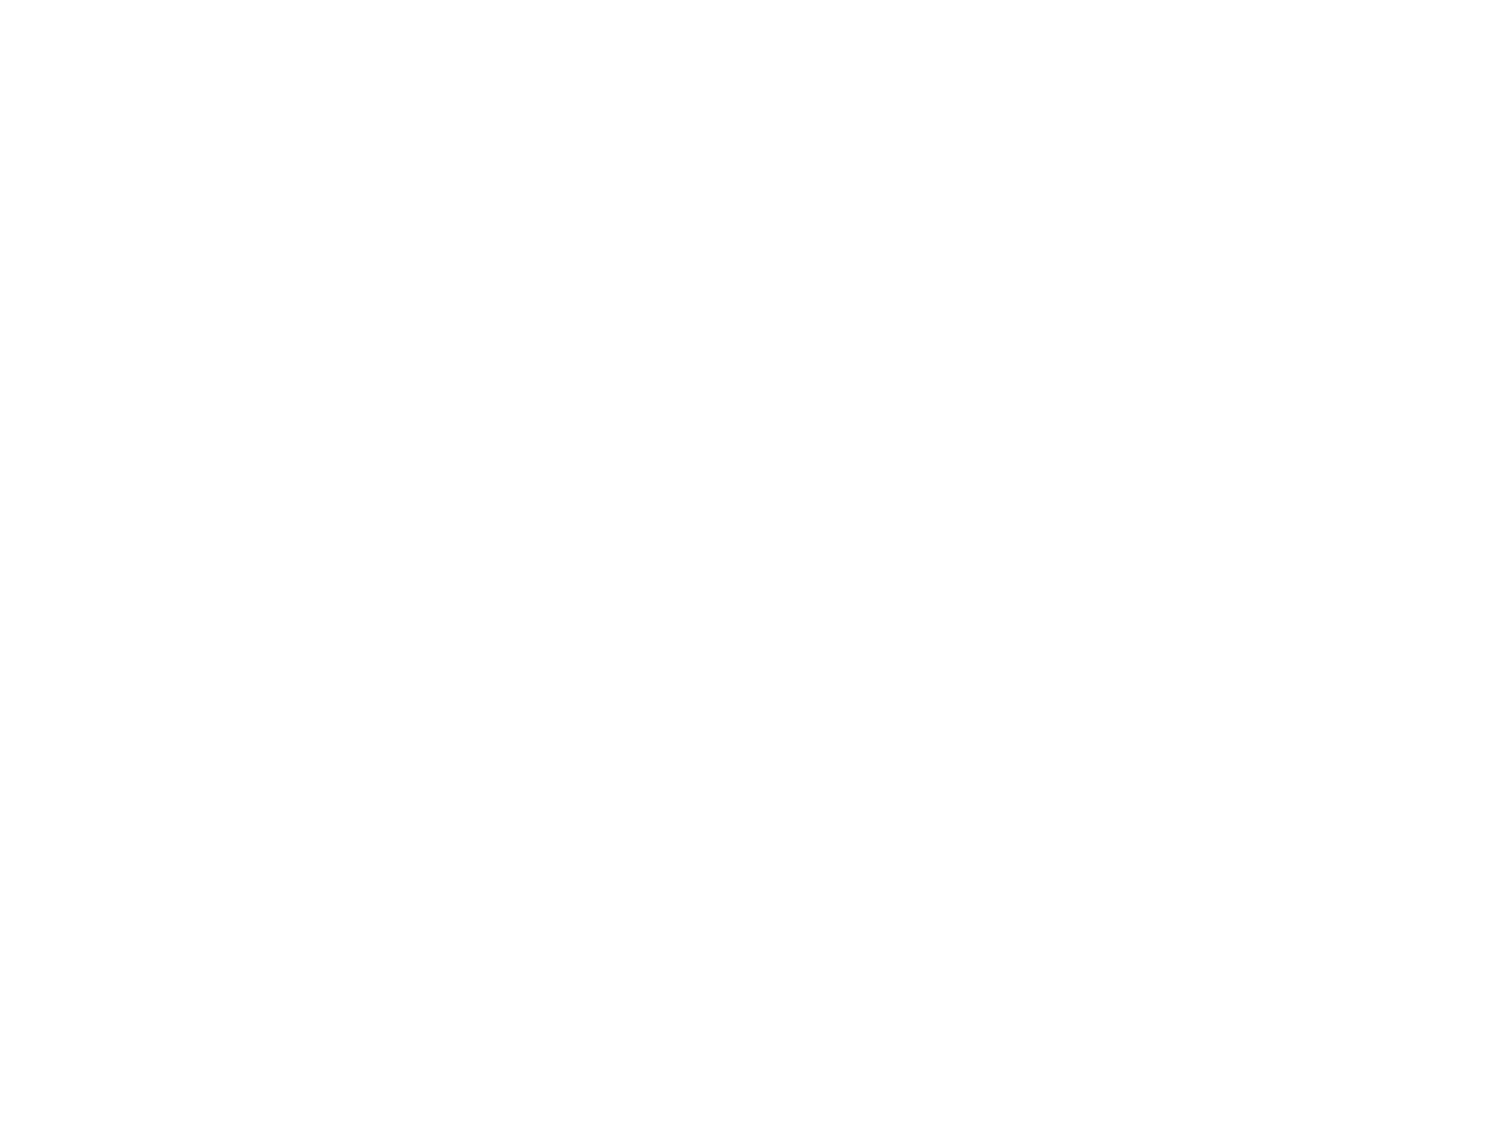 TruePath Financial Planning